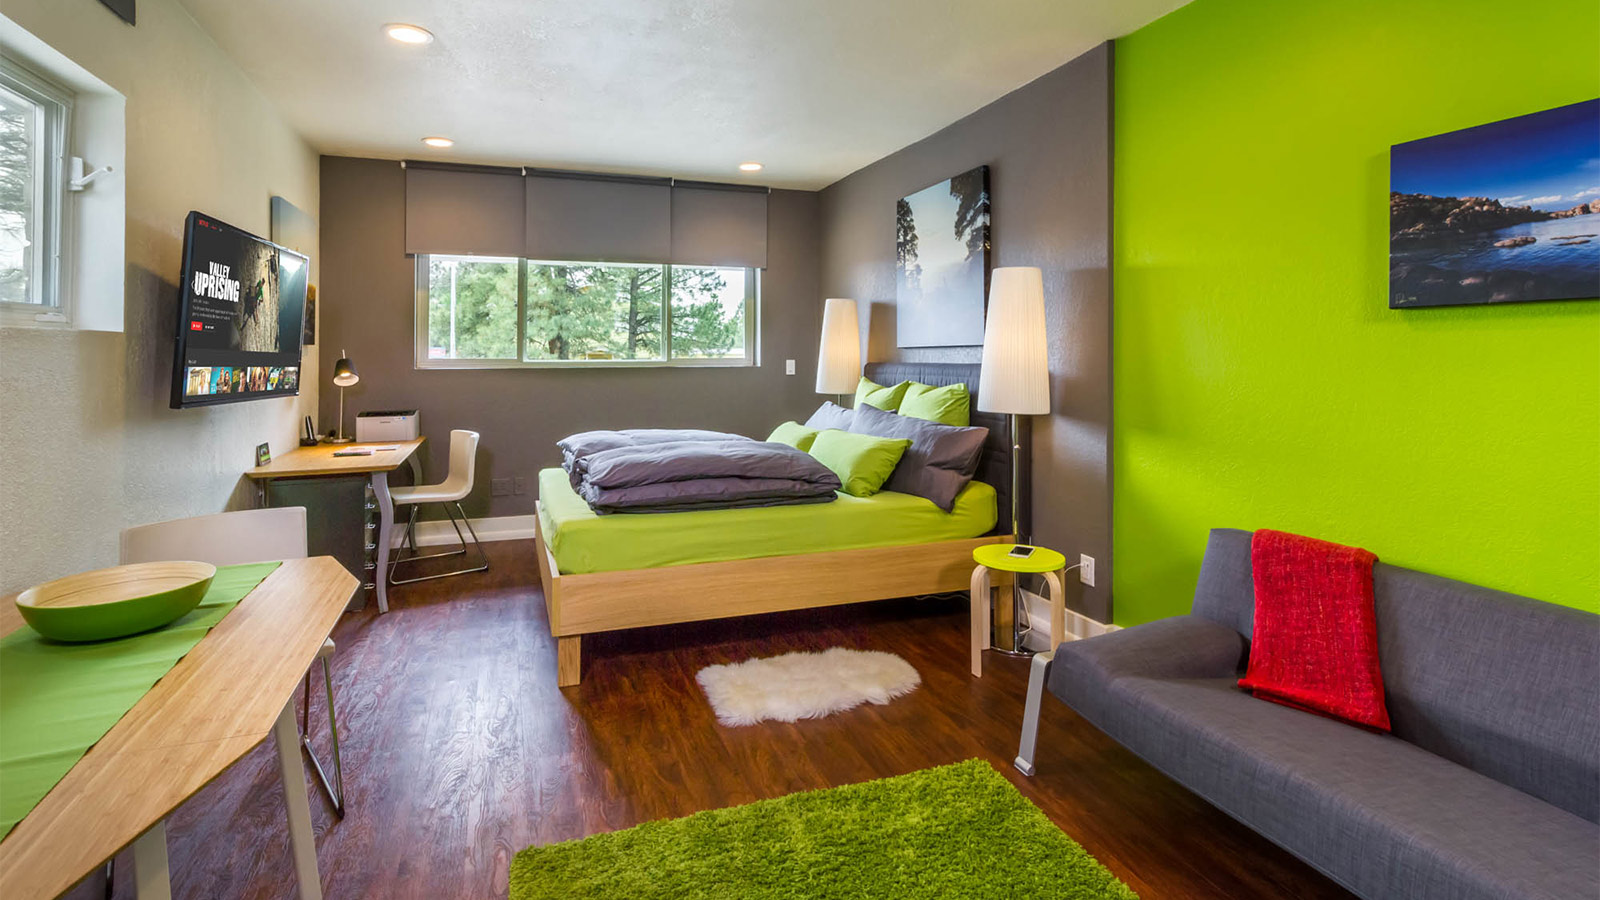 All new vacation rental Studio in Flagstaff